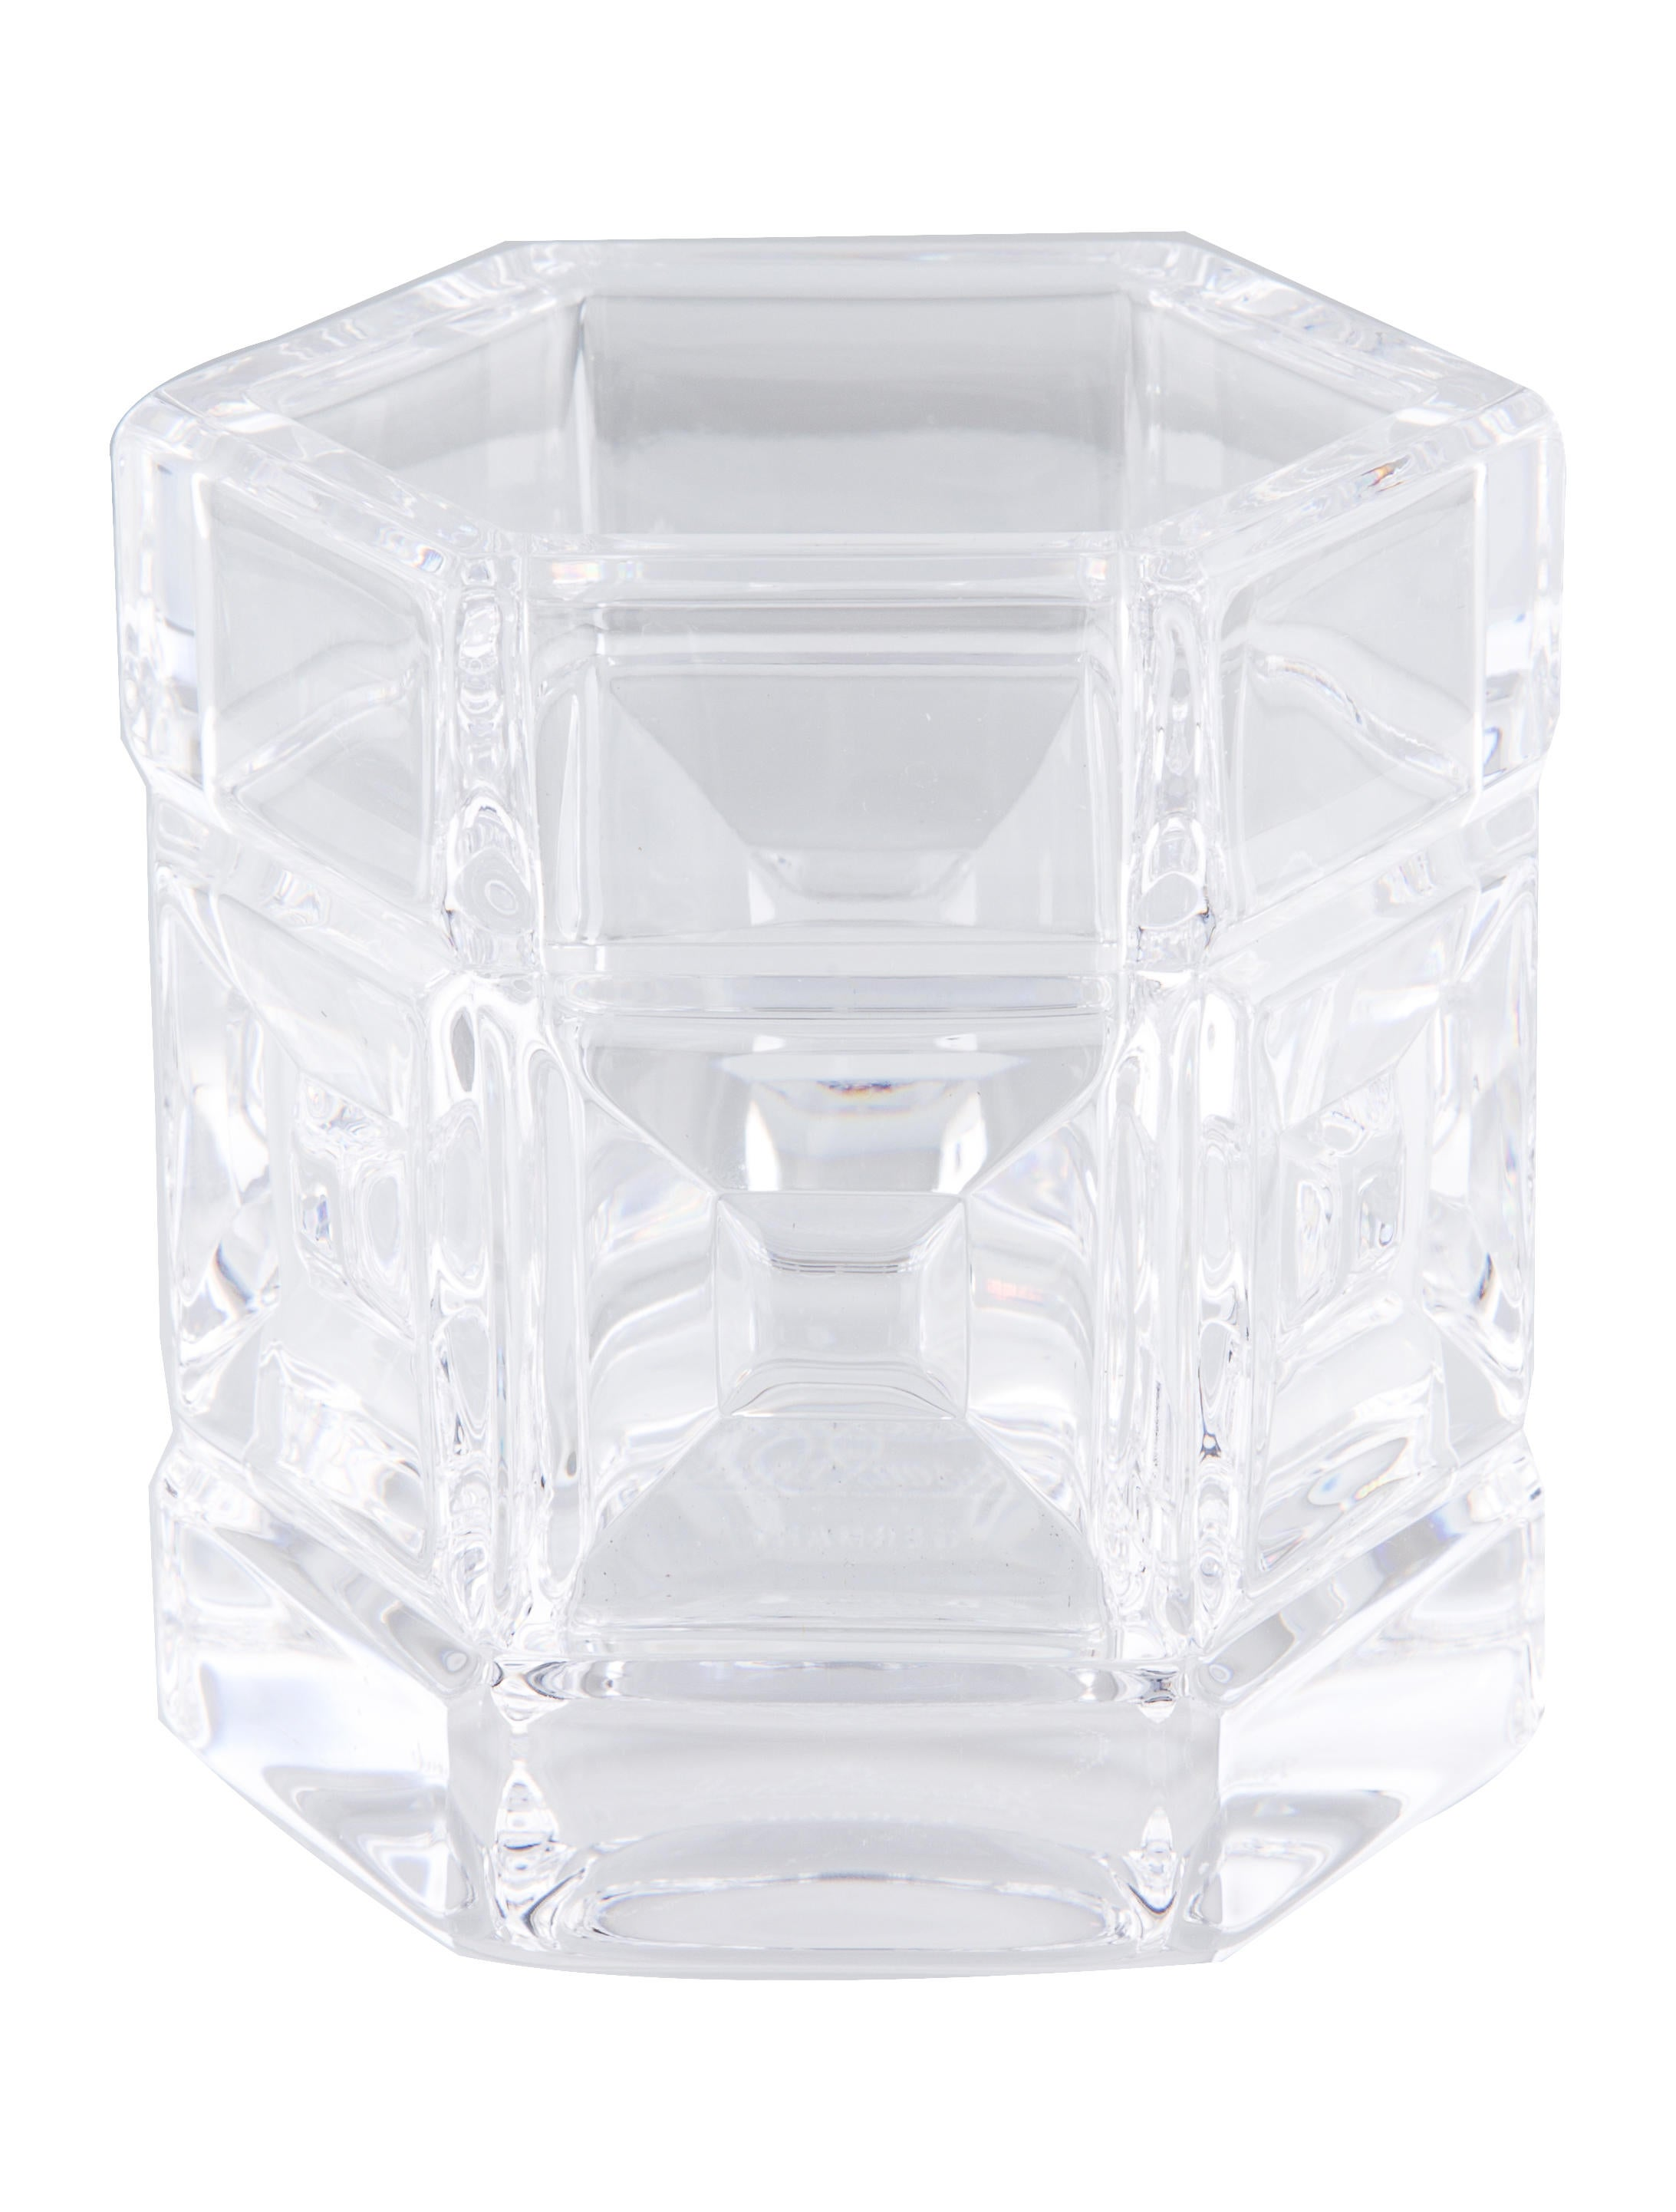 Rosenthal domus crystal votives decor and accessories Crystal home decor